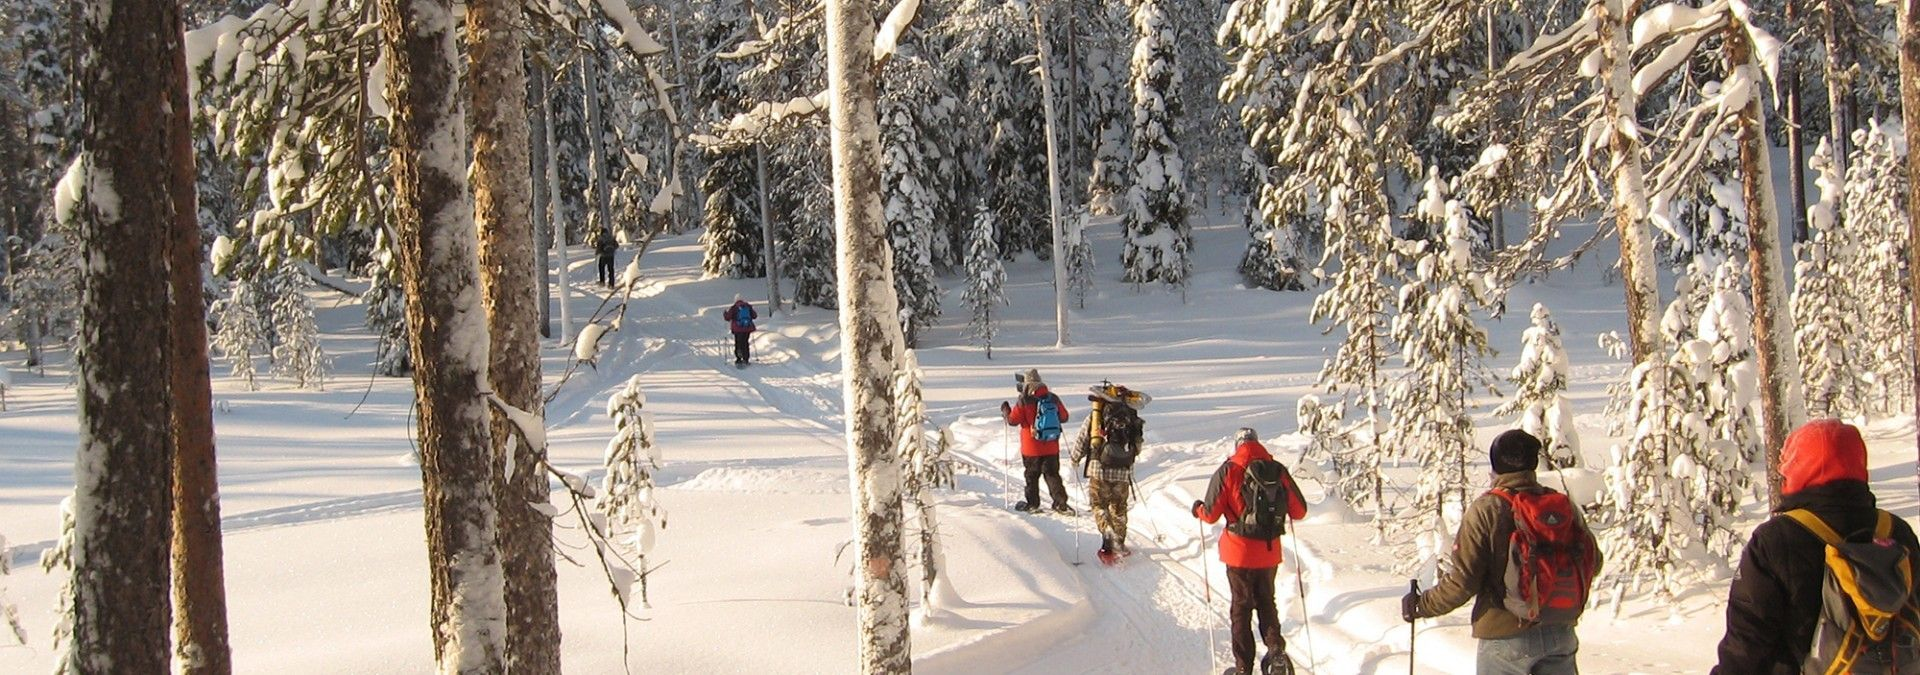 Snow-shoeing_through_forest_Finland.jpg